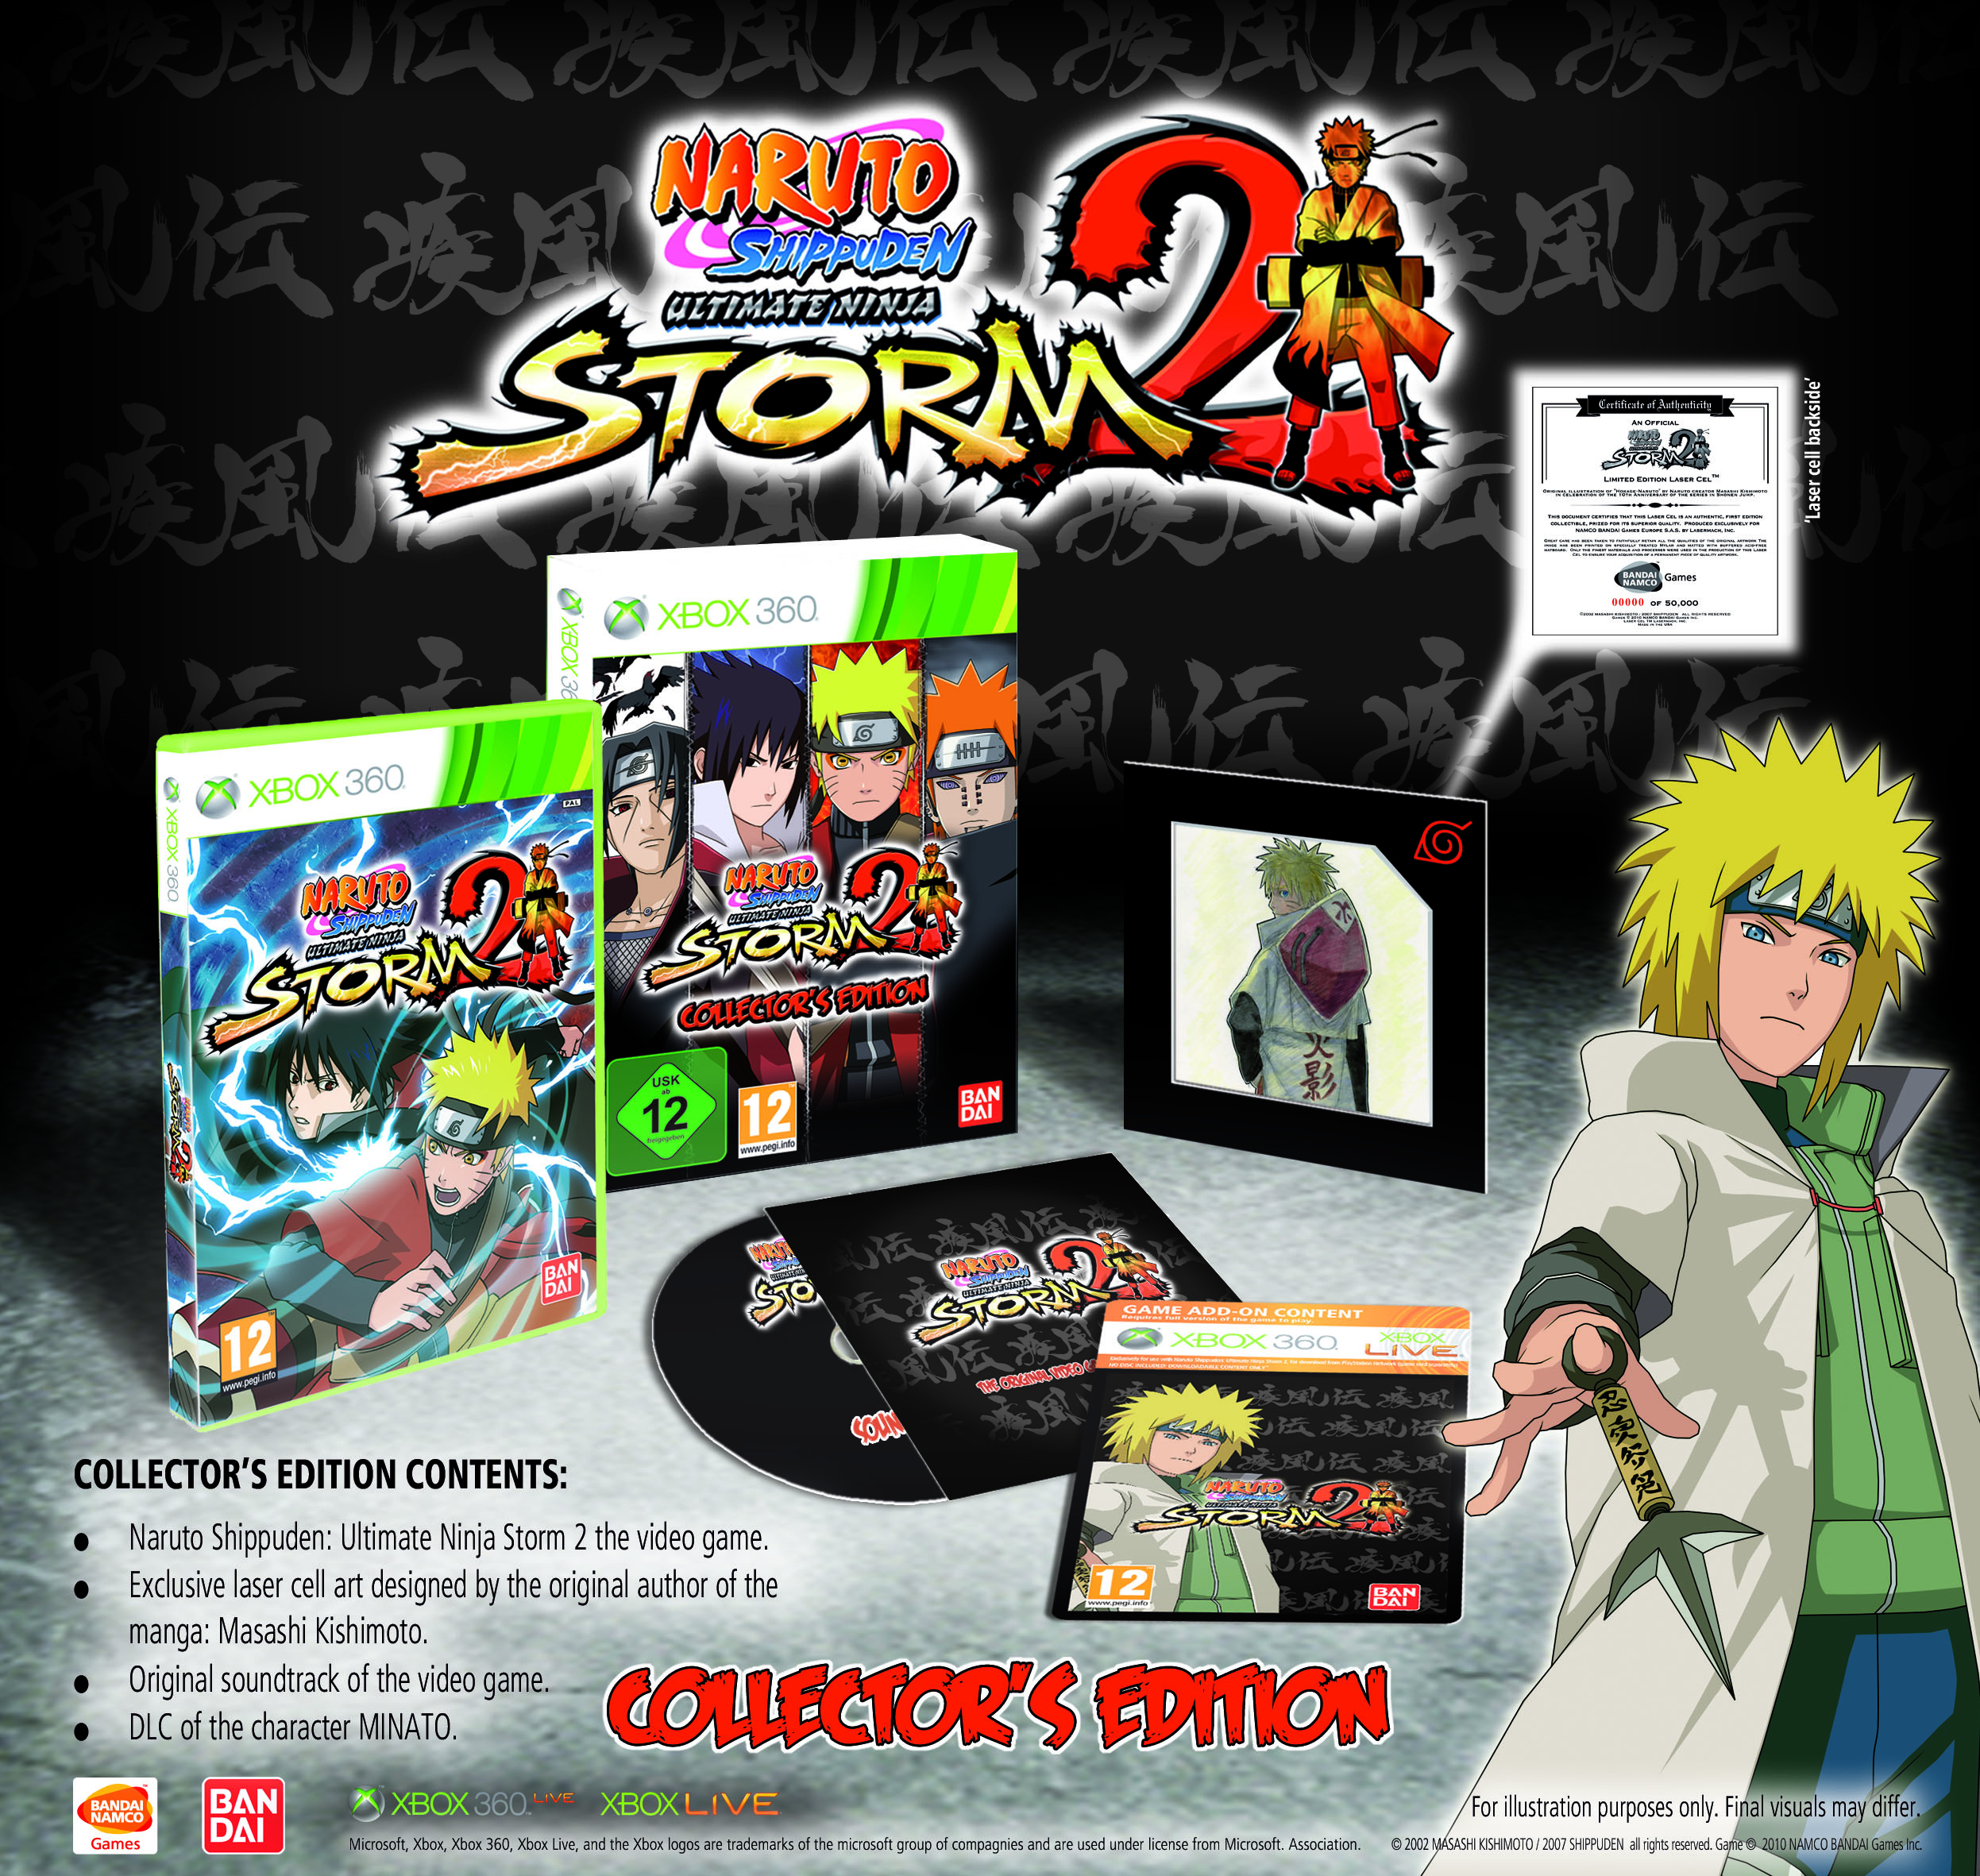 Naruto Shippuden Storm2 X360 collector Divers